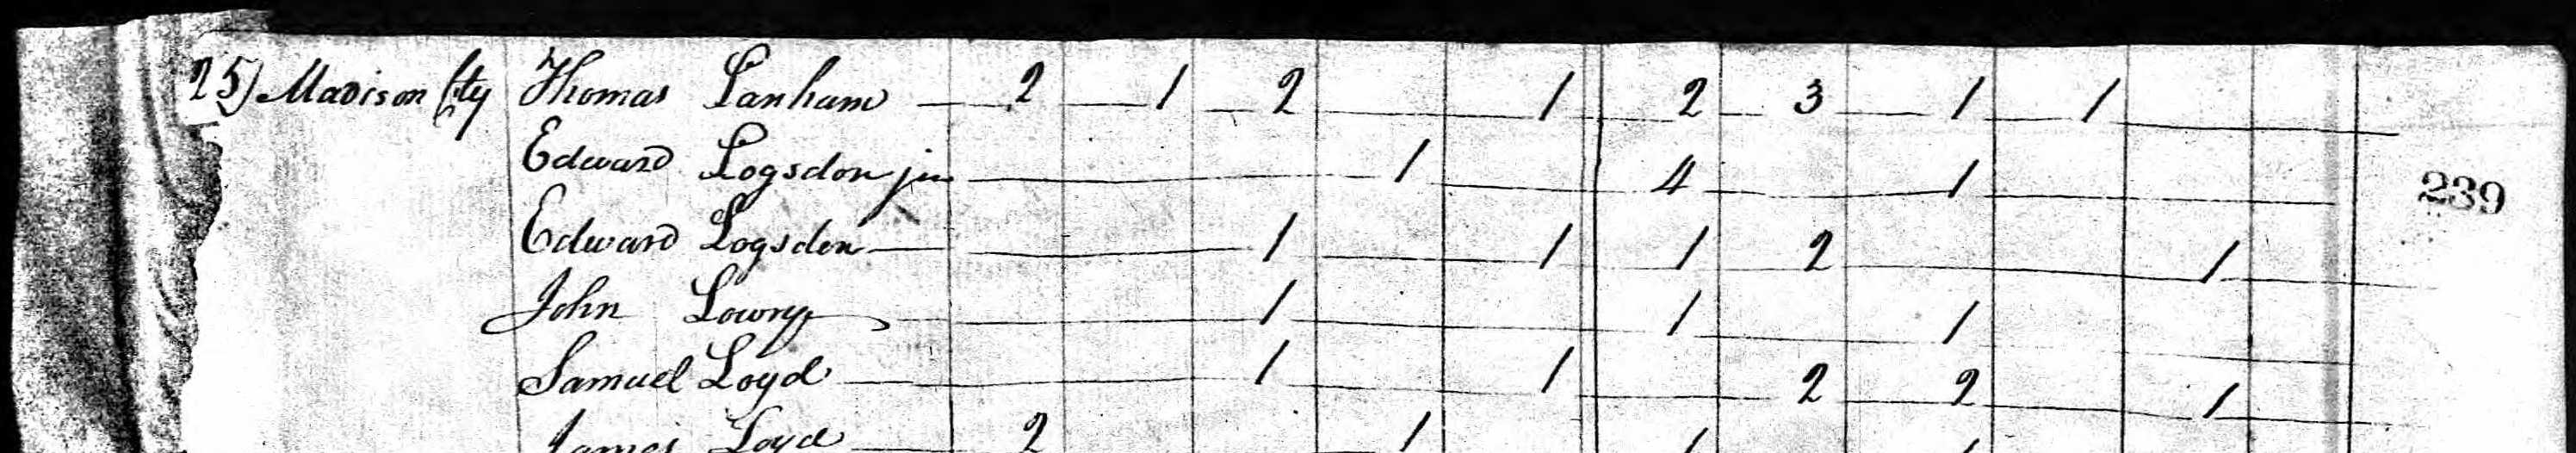 1810 Federal Census showing Lanham Family